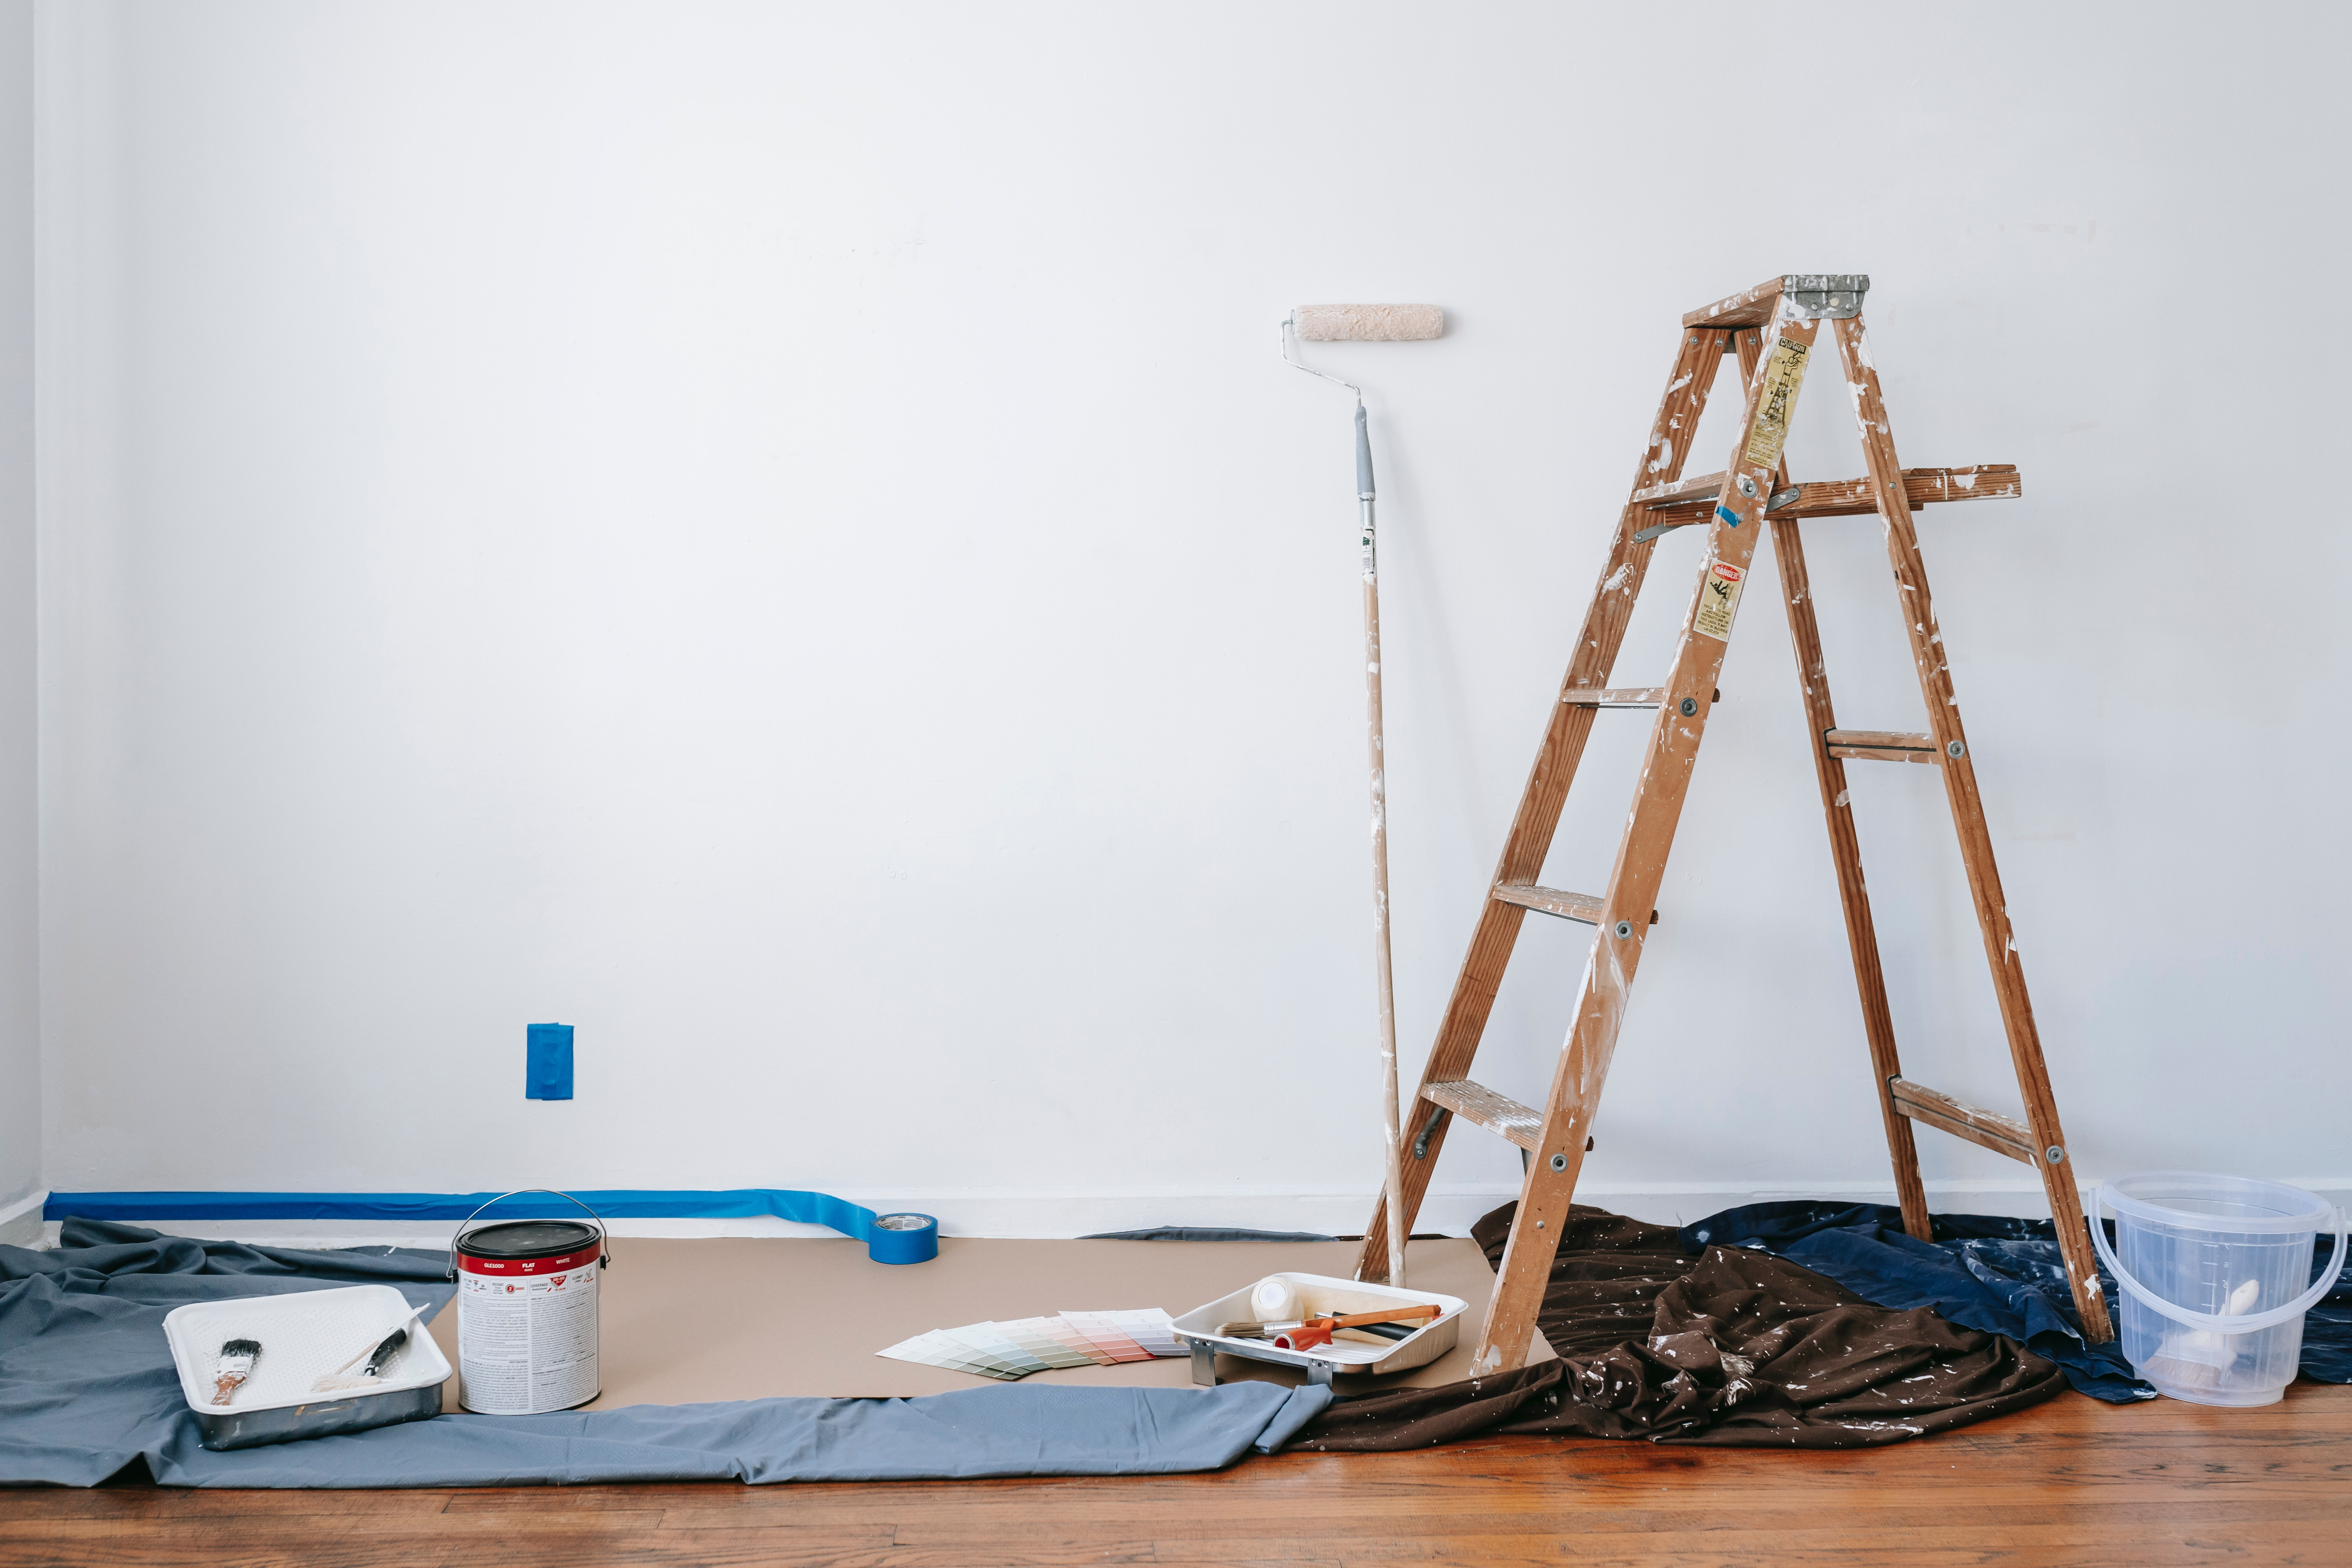 Top 5 Most Expensive Home Repairs That Will Break the Bank